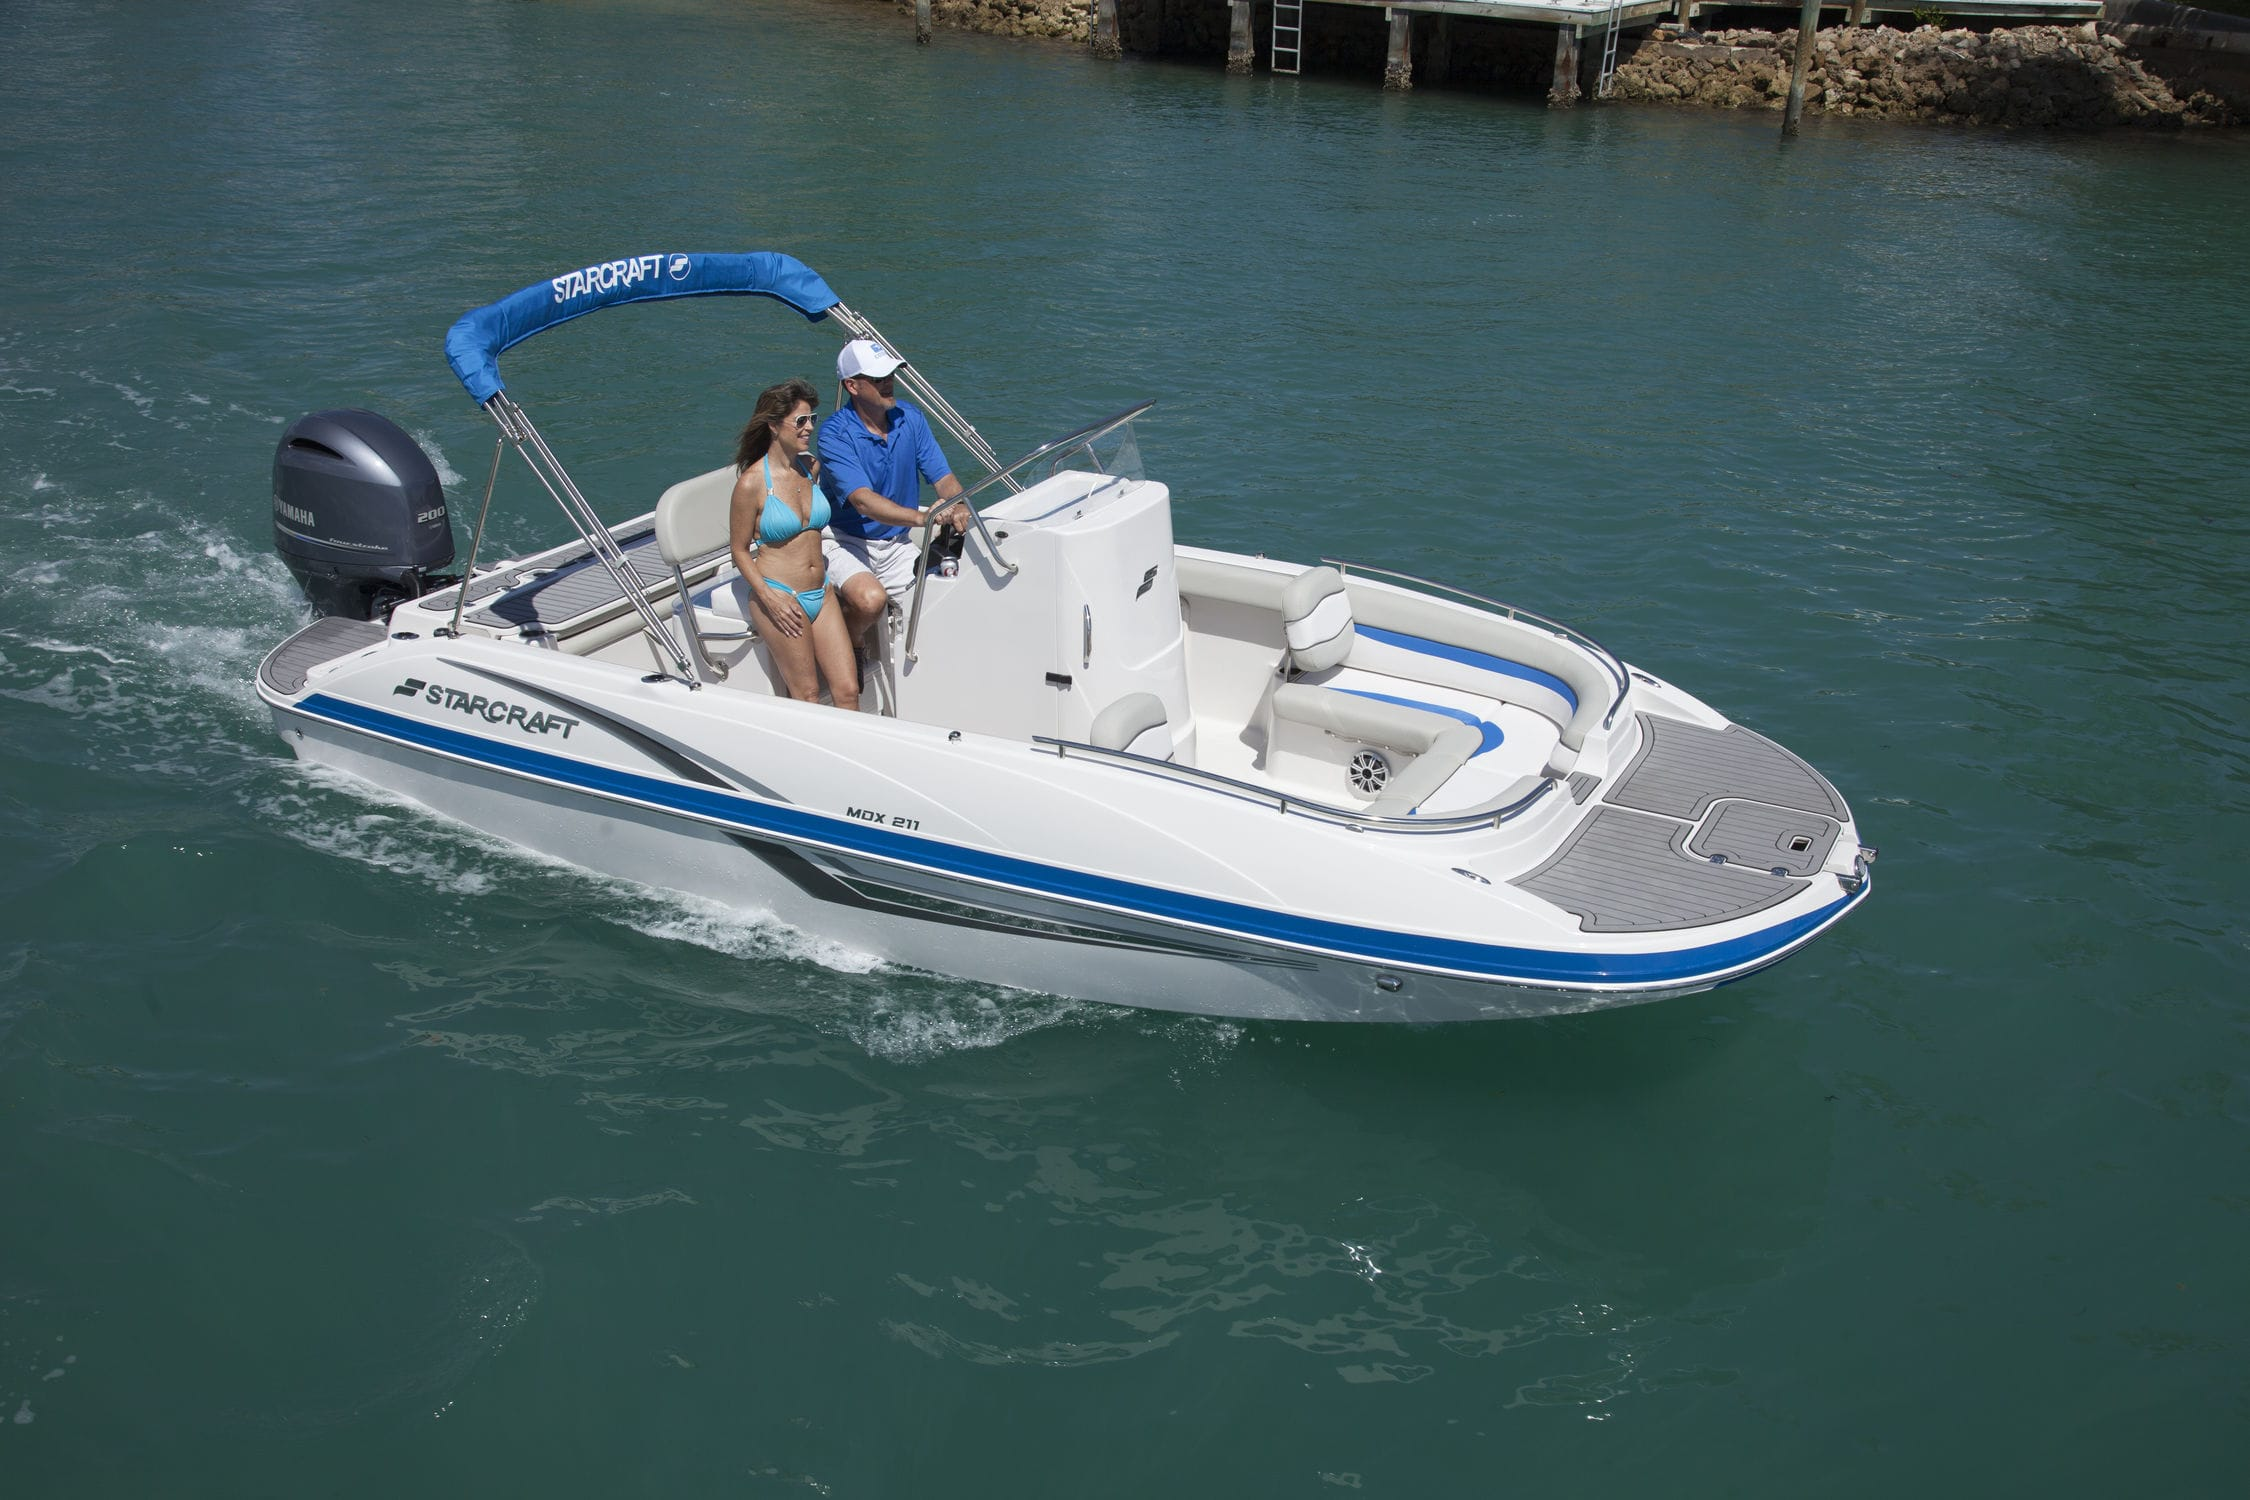 Outboard deck boat / sport-fishing / 12-person max  211 MDX OB Starcraft